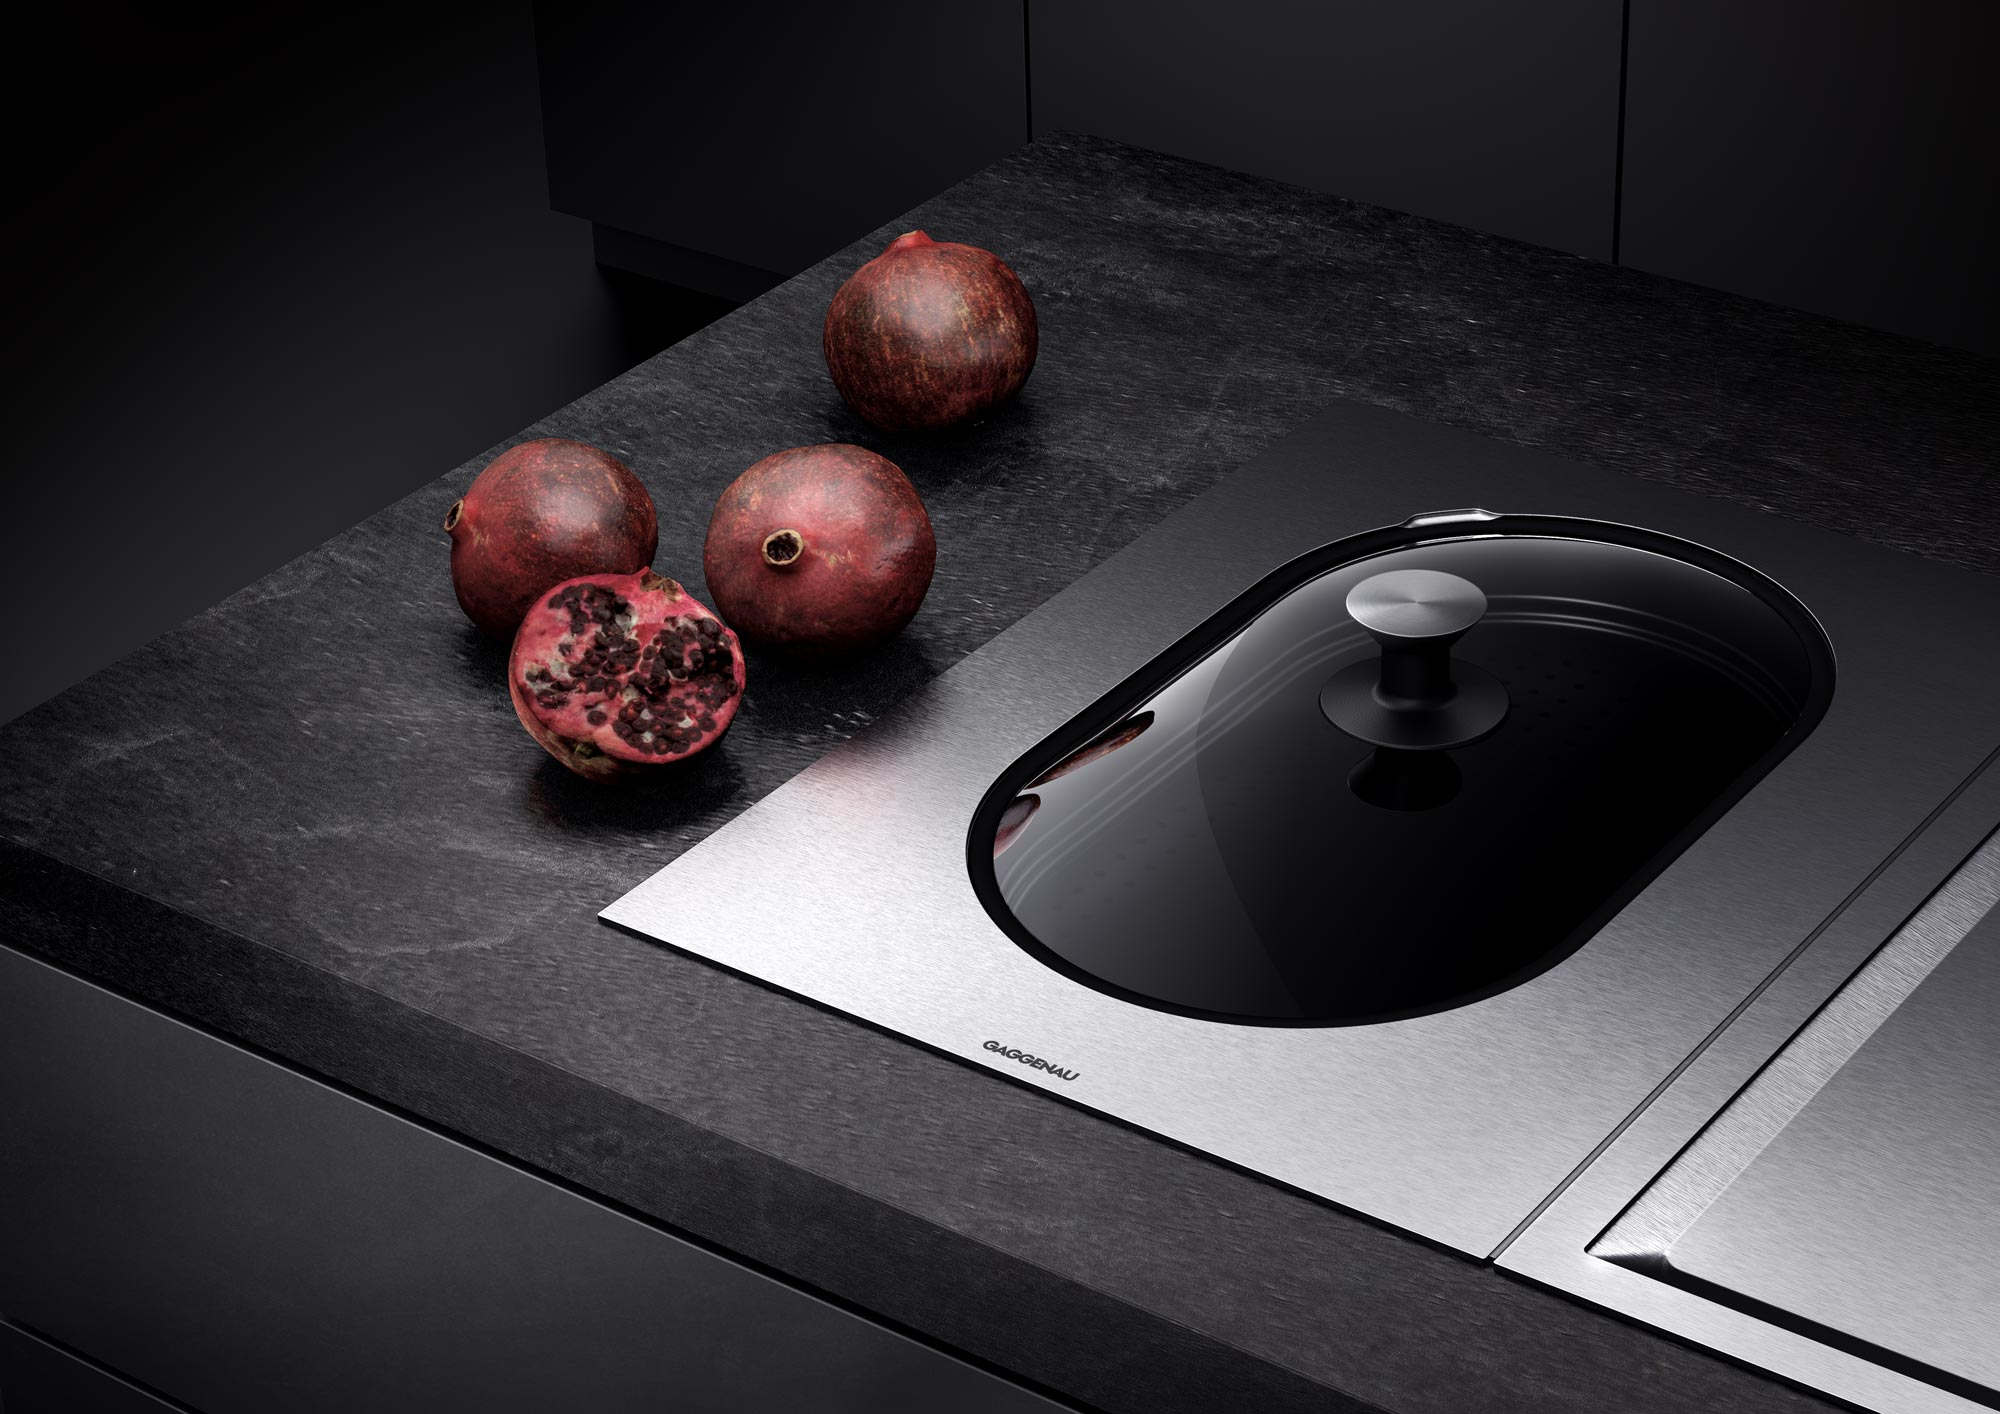 Home appliances - Full CG - Cooktop with food - Detail